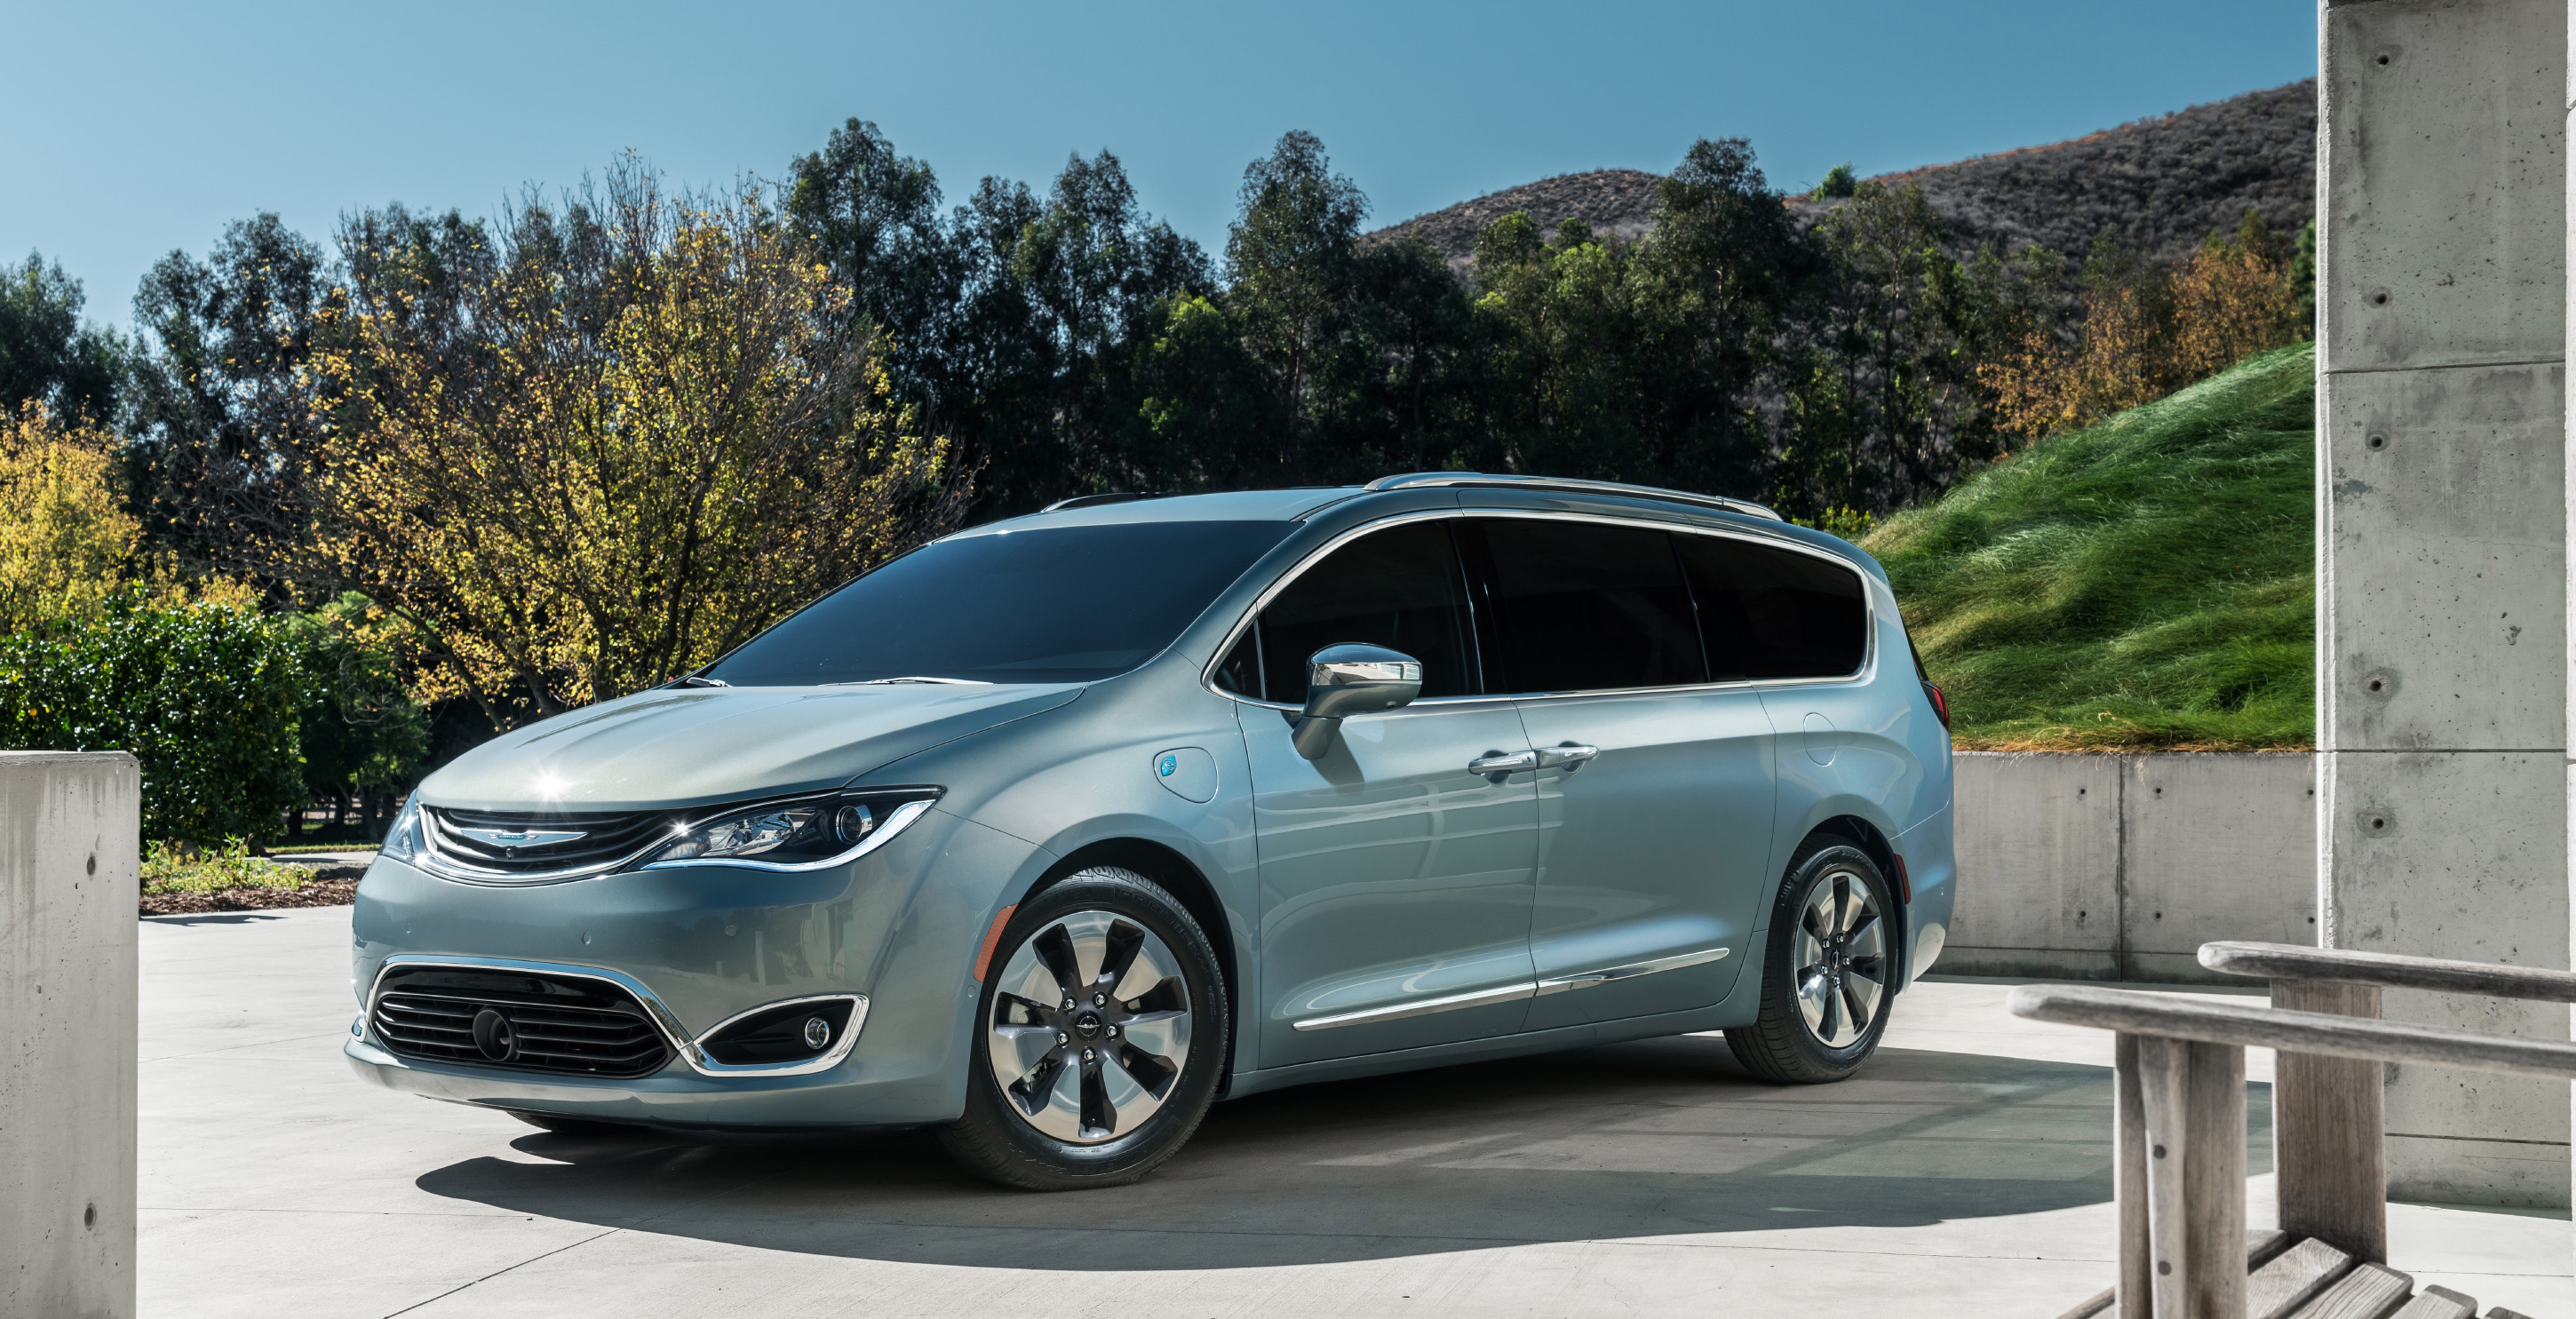 chrysler pacifica hybrid a win for minivan fans the green car guy. Black Bedroom Furniture Sets. Home Design Ideas